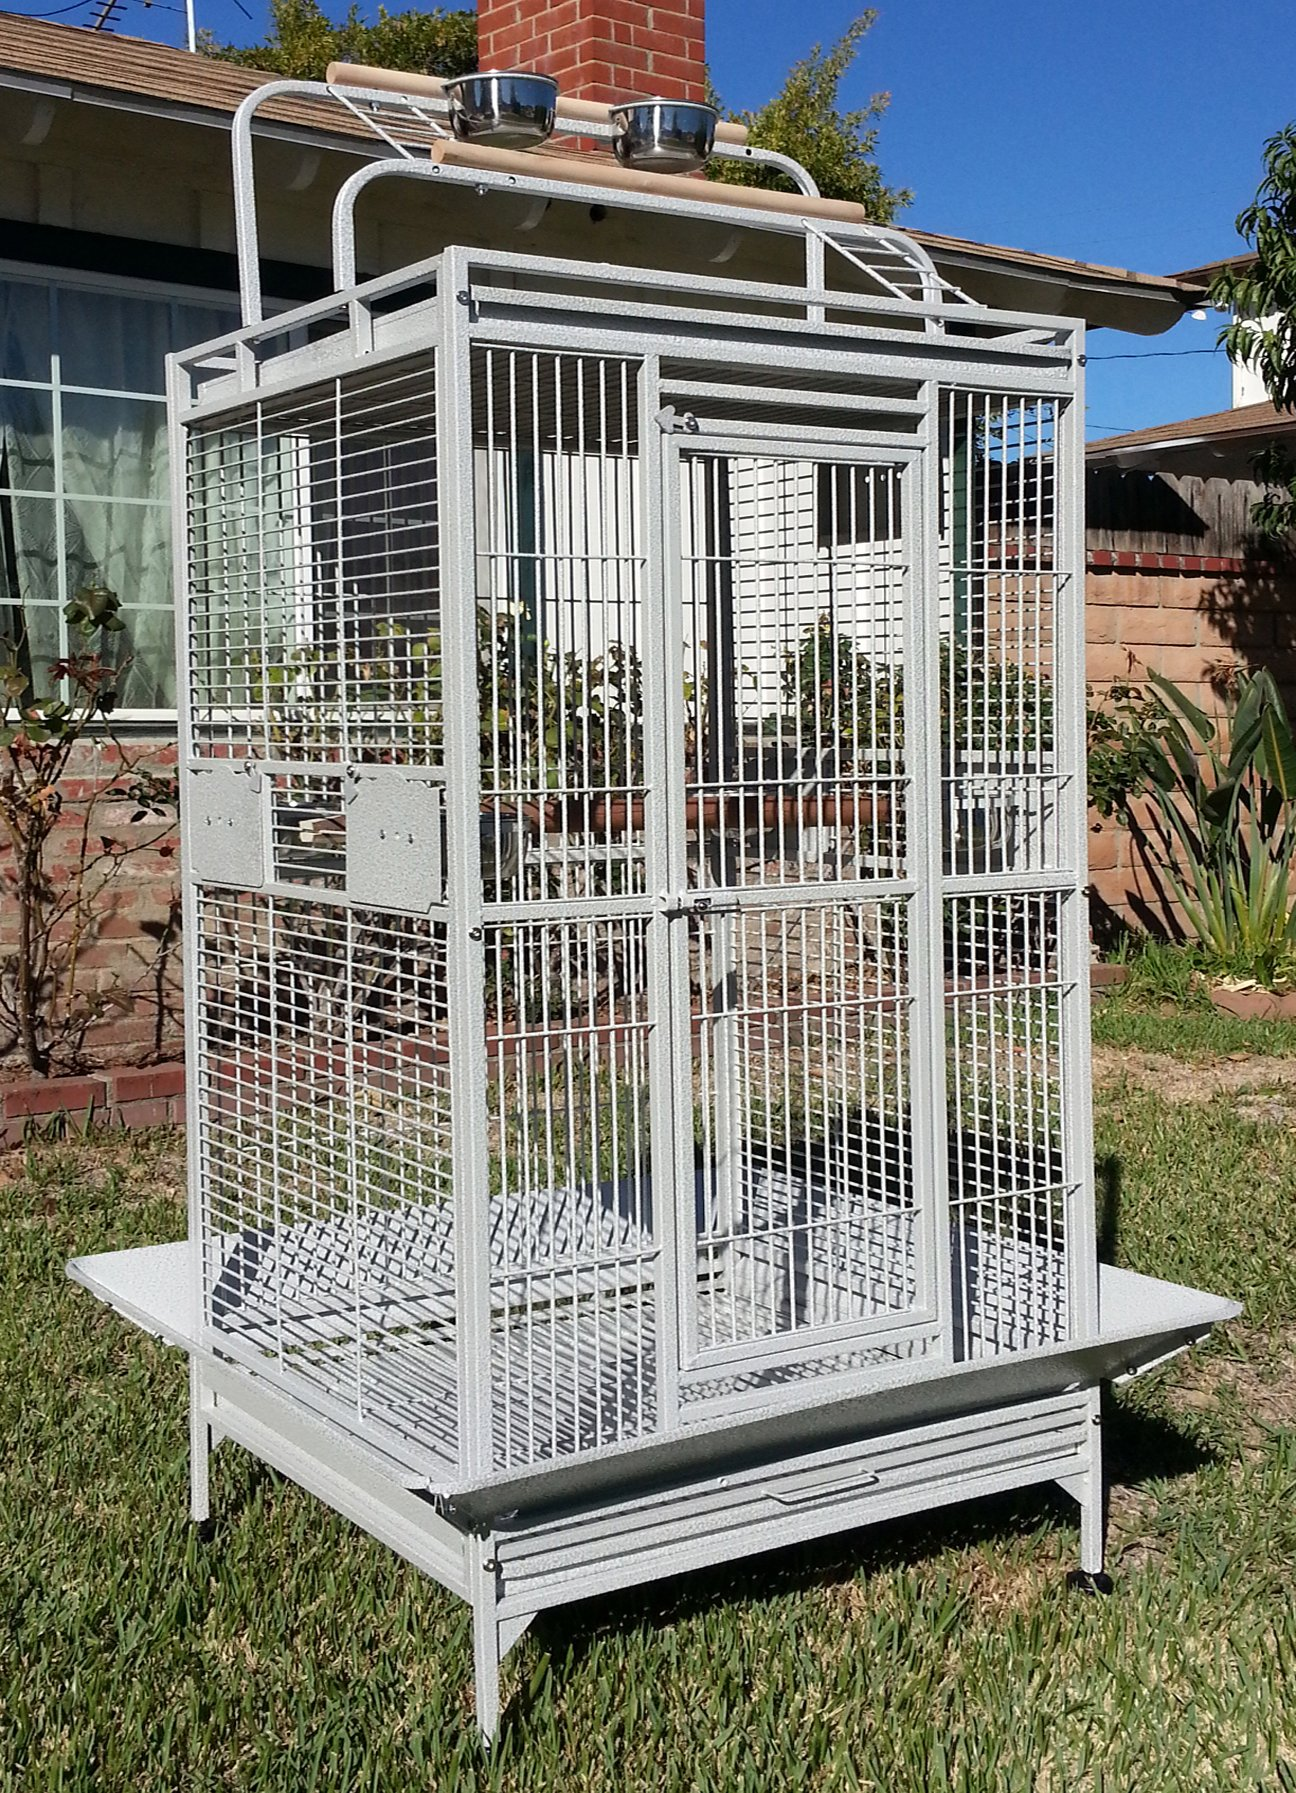 Mcage New Large Wrought Iron Bird Parrot Cage Double Ladders Open/Close Play Top, Include Seed Guard and Open Play Top (White Vein) by Mcage